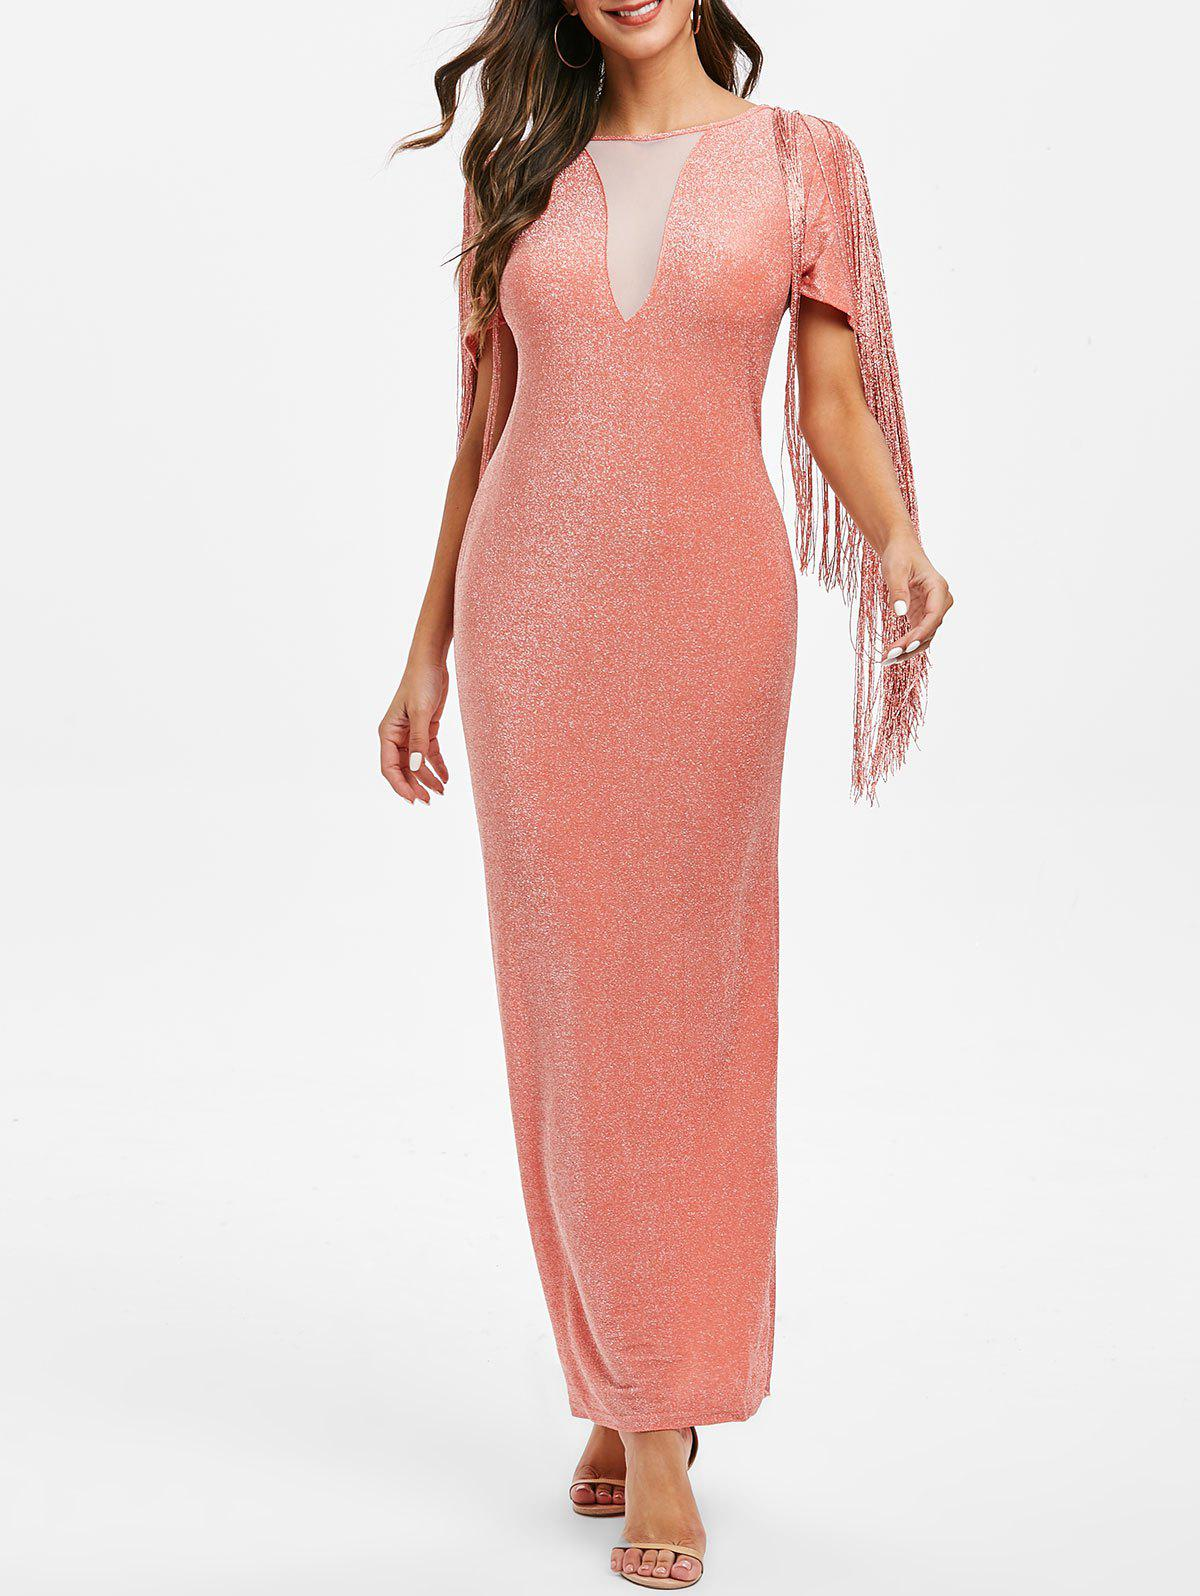 Fashion Sparkly Fringed Mesh Panel Maxi Party Dress